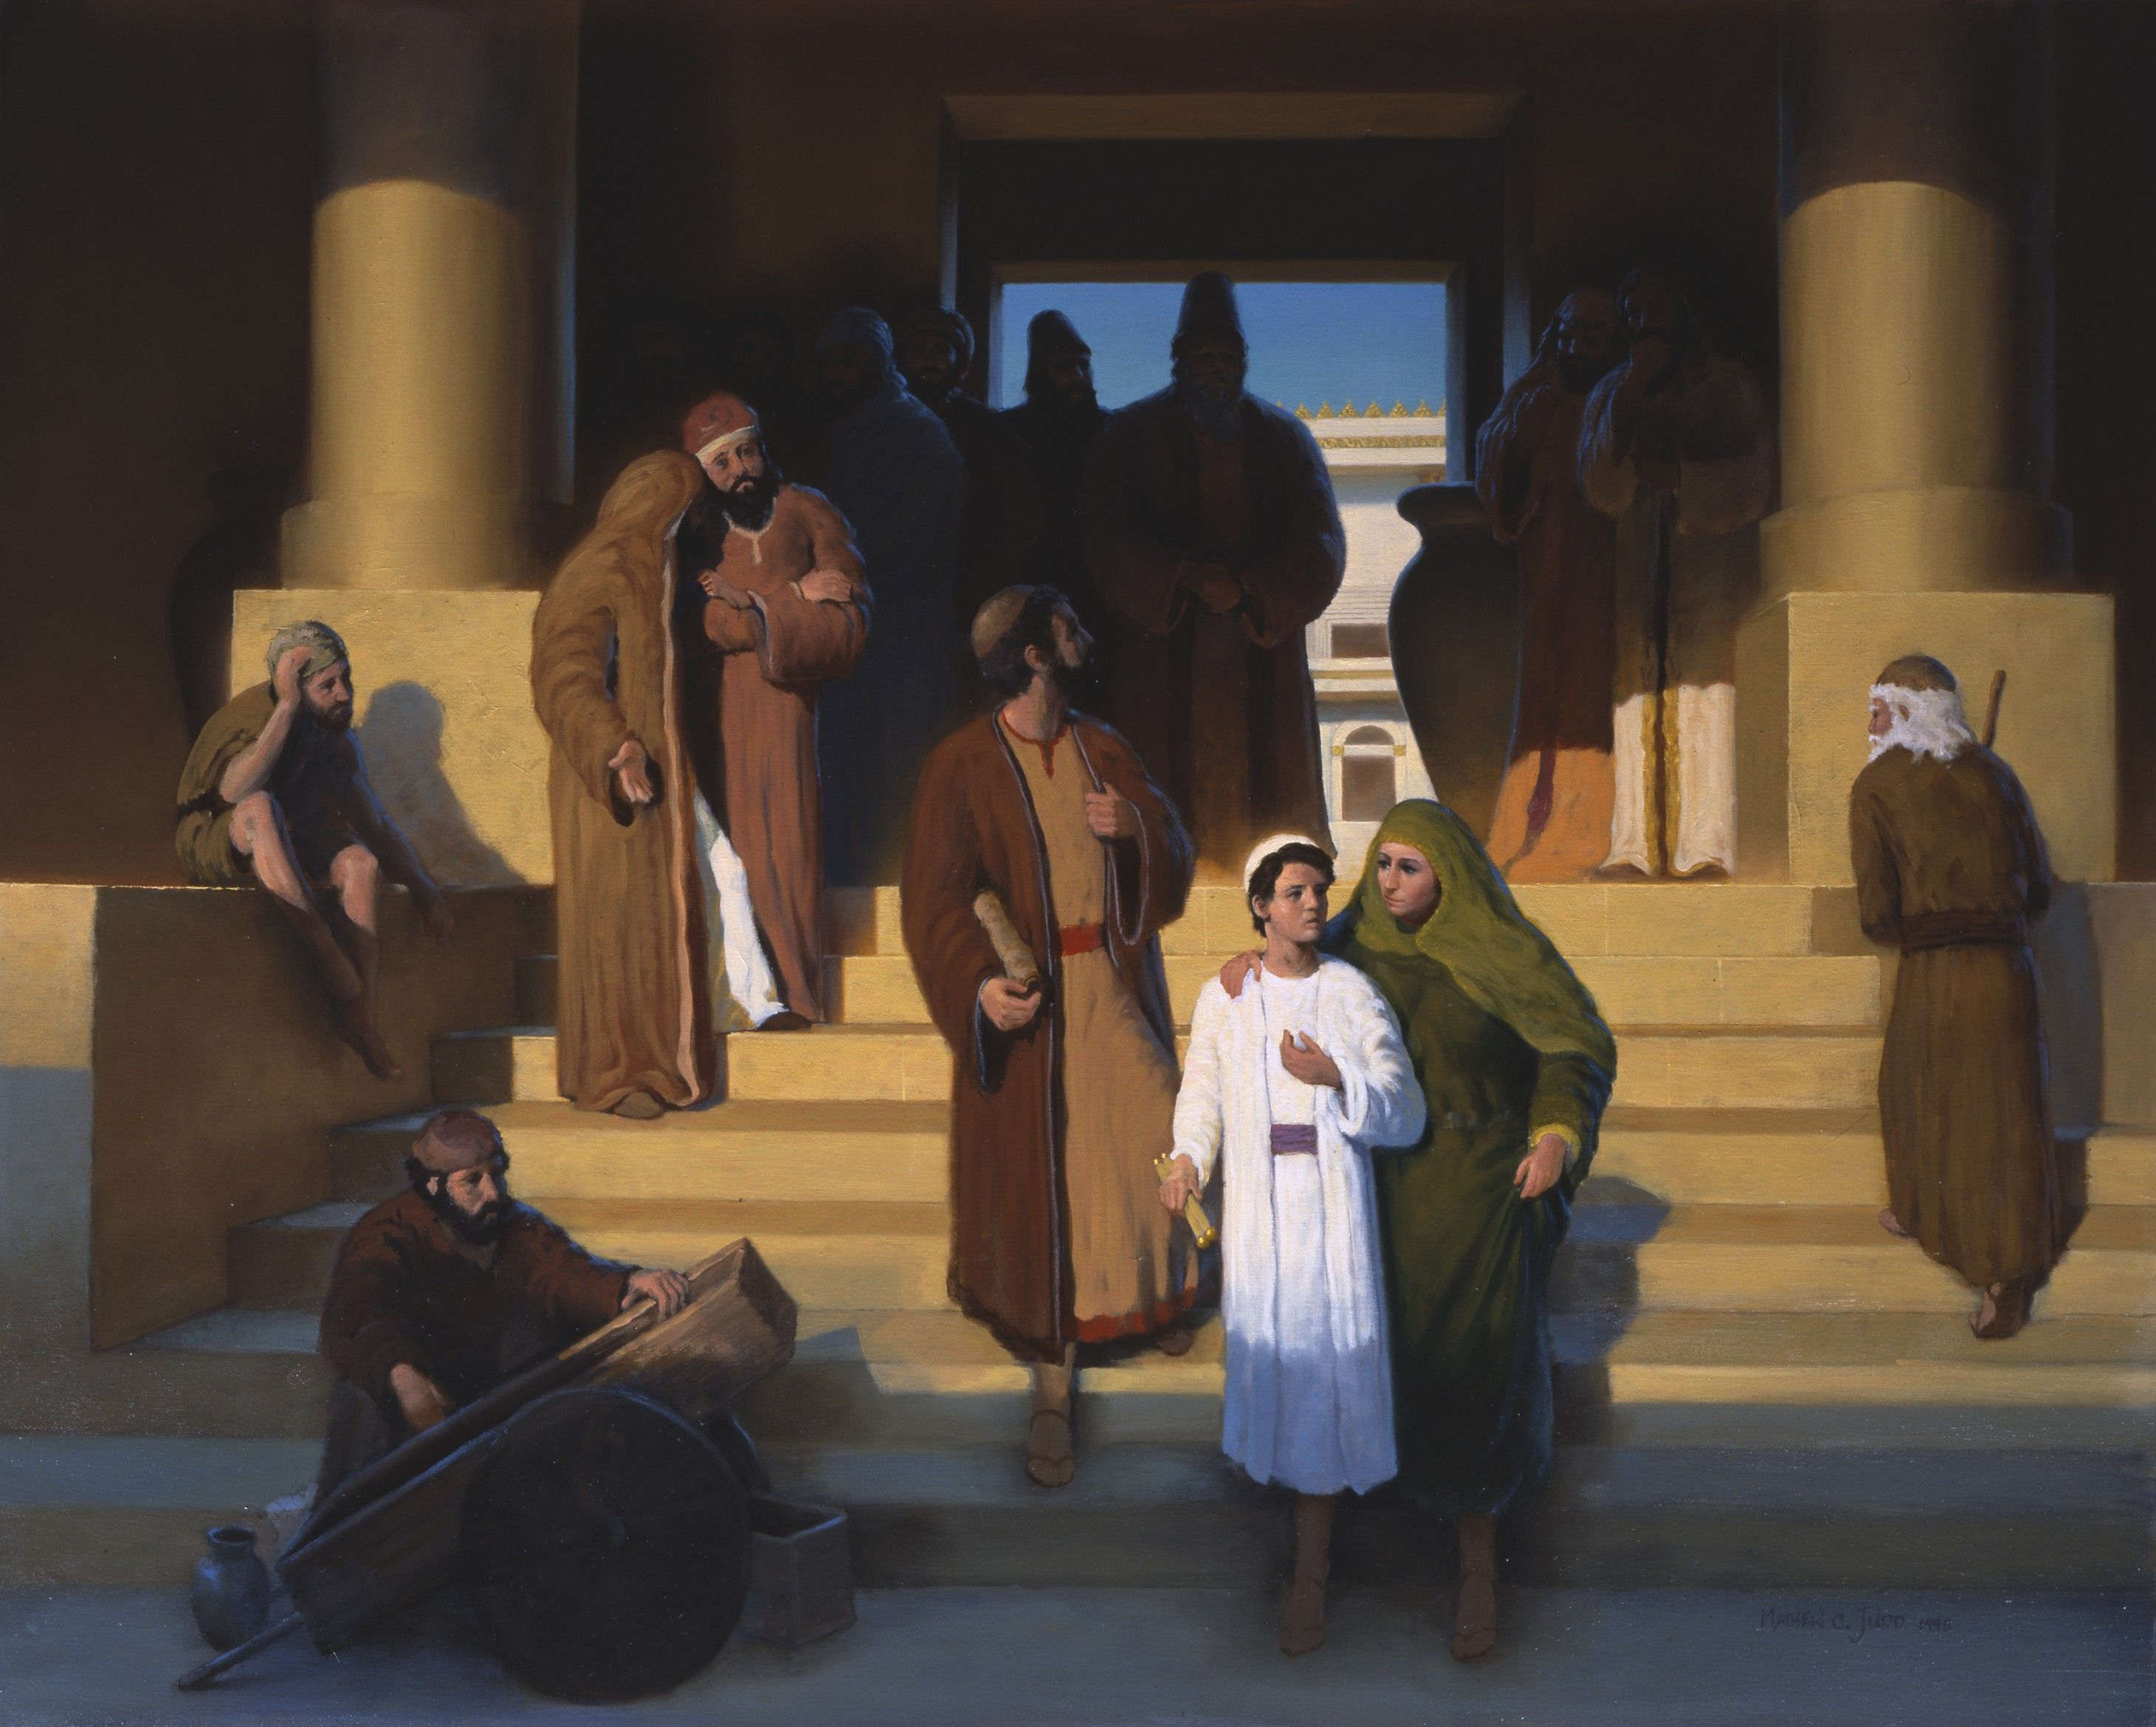 The Young Jesus Coming Out of the Temple with Mary and Joseph, by Matthew Judd